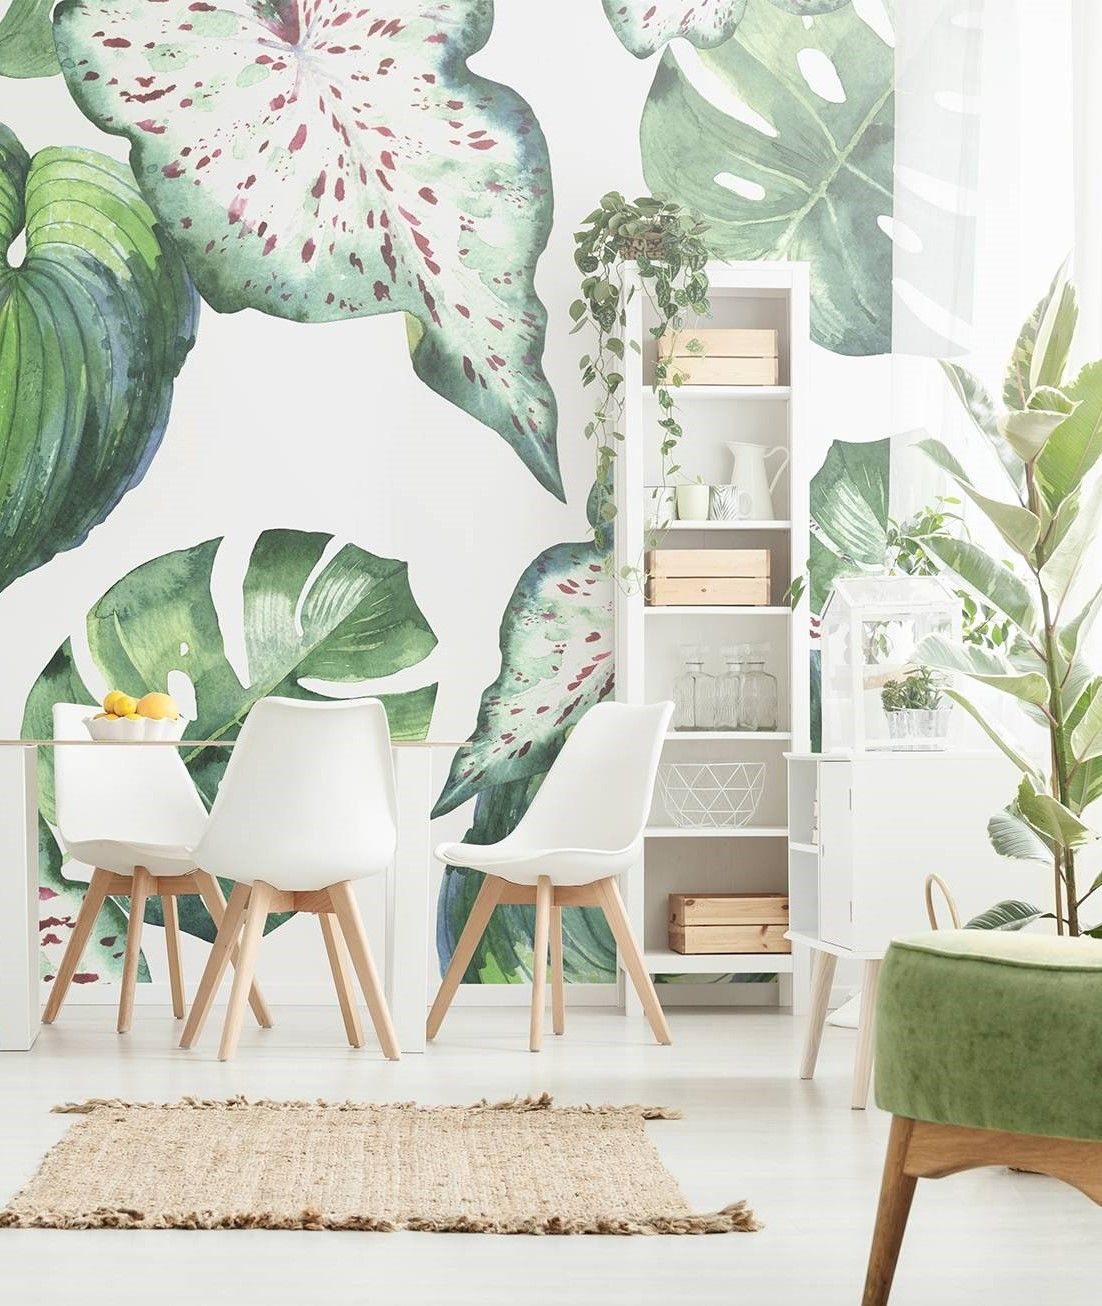 Dning Room And Plants Dining Room Contemporary Wall Murals Nature Pixers We Live To Change In 2020 Dining Room Contemporary Feng Shui Interior Design Contemporary Wall